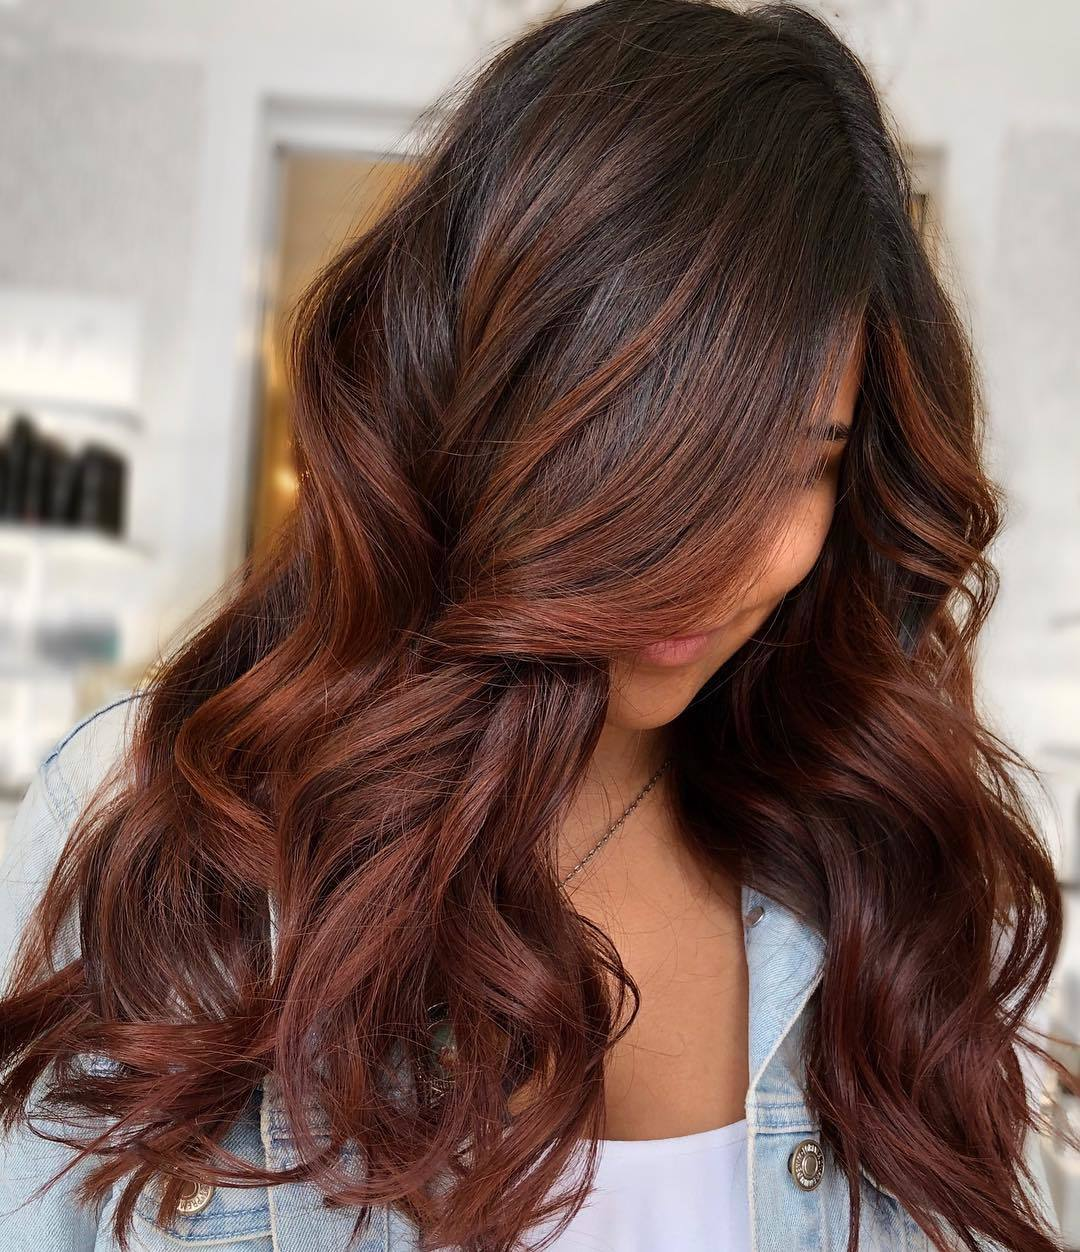 20 Stunning Chestnut Brown Hair Ideas